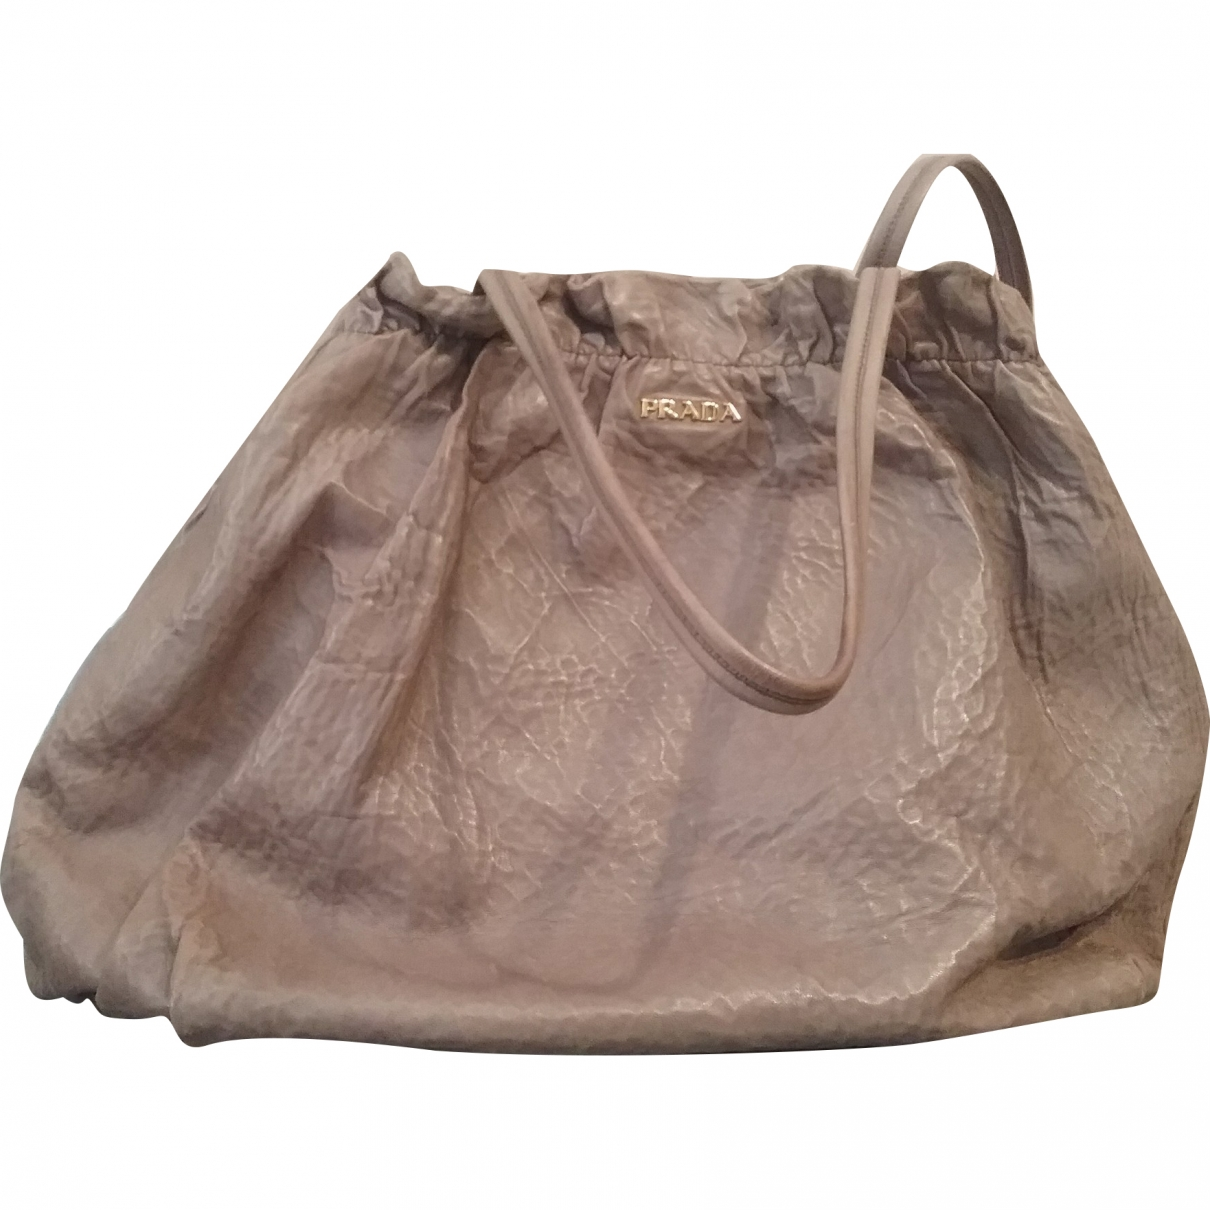 Prada \N Grey Leather handbag for Women \N